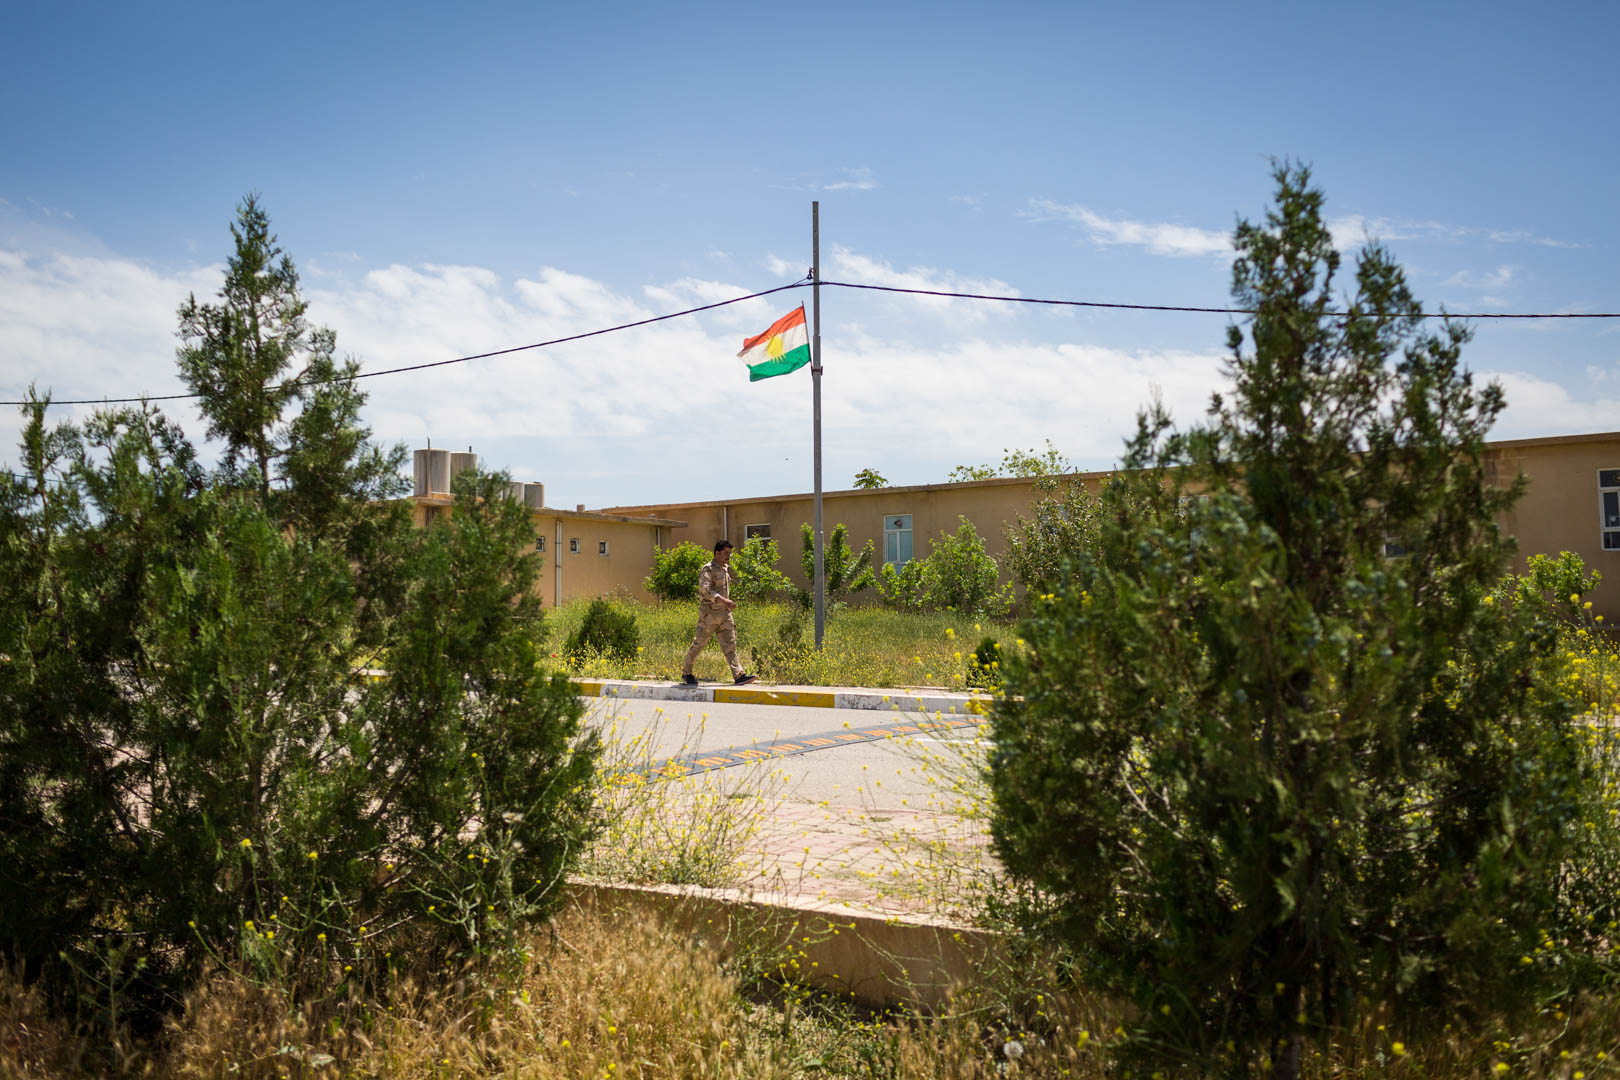 A Peshmerga soldier walks the perimeters of the Zerewani compound near Erbil, where coalition forces are training the Peshmerga, the armed forces of the Kurdish Autonomous Region of Iraq.